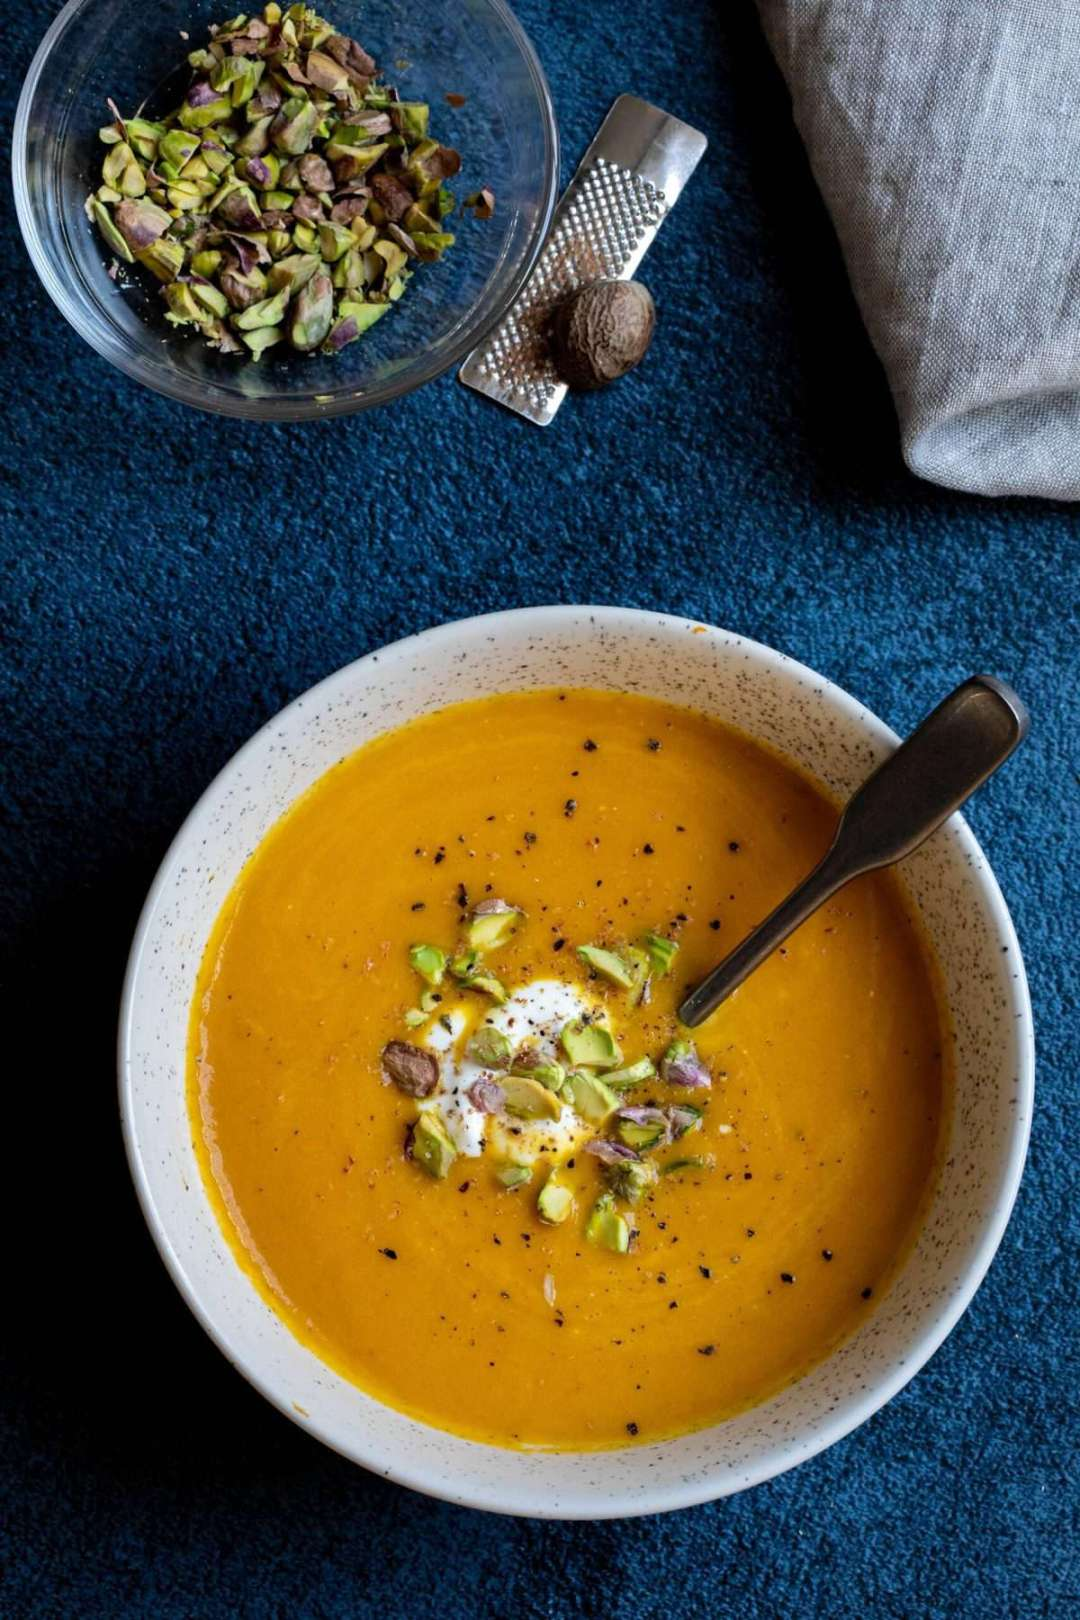 carrot ginger soup with small bowl of pistachios, nutmeg, and napkin